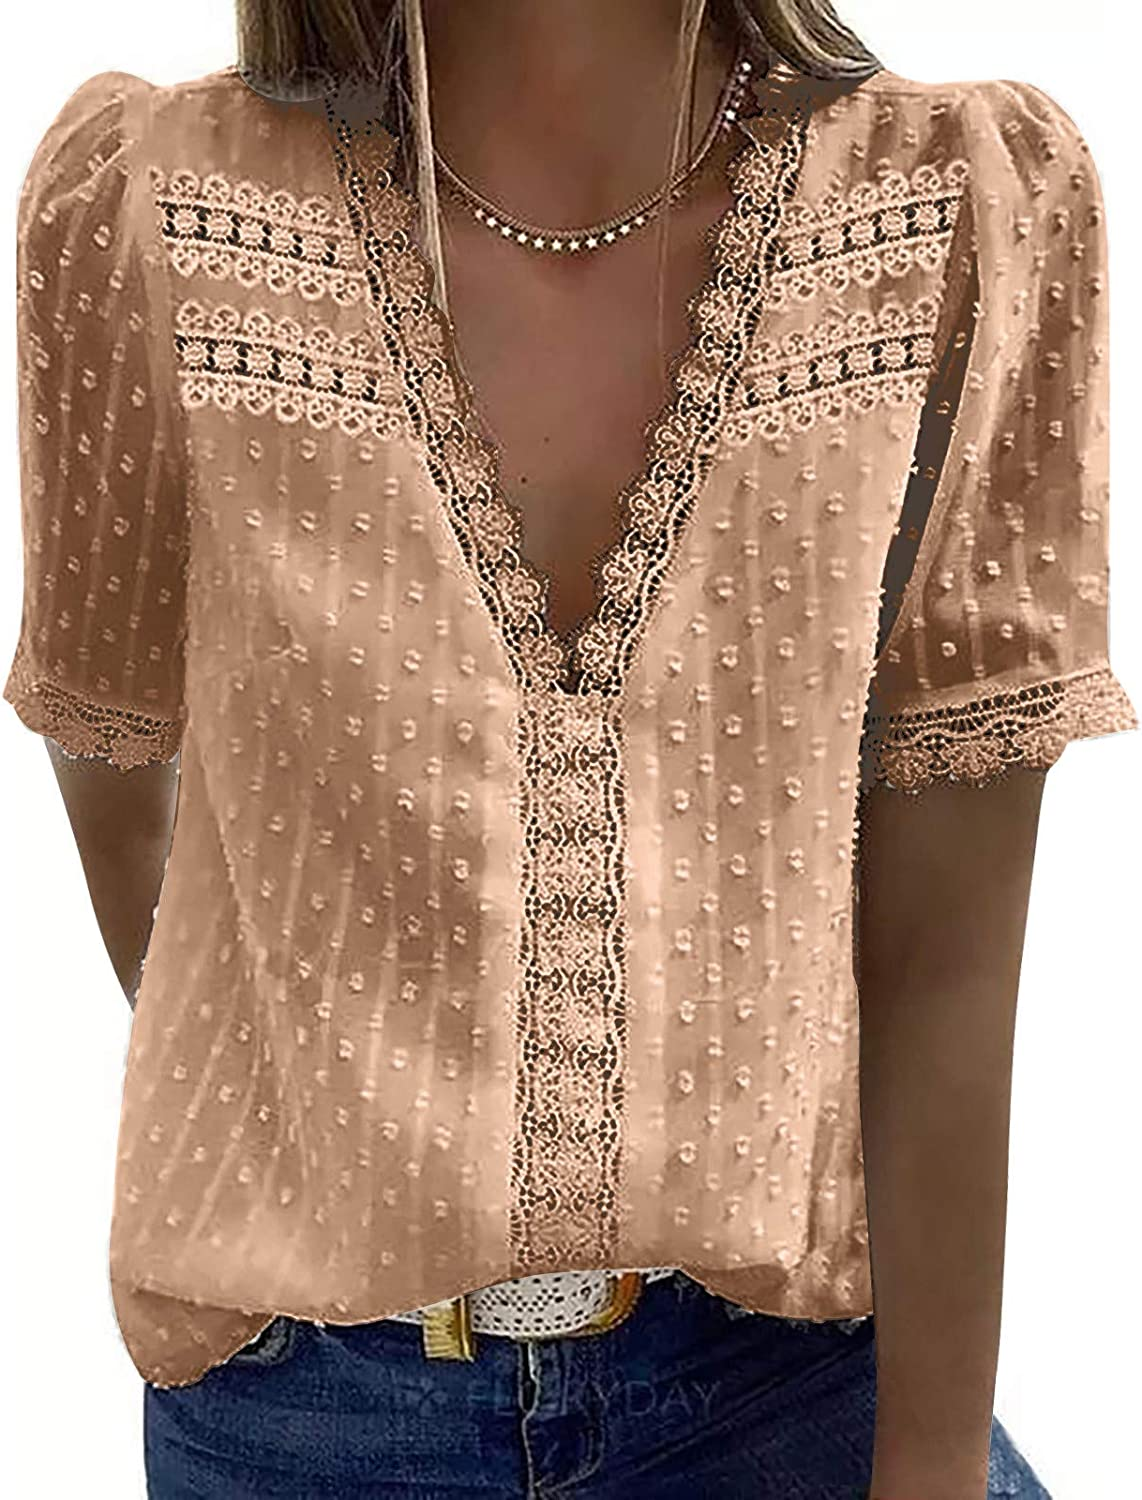 siilsaa Summer Tops for Women Women's Ultra-Cheap Deals T Safety and trust Neck Color V Lace Solid